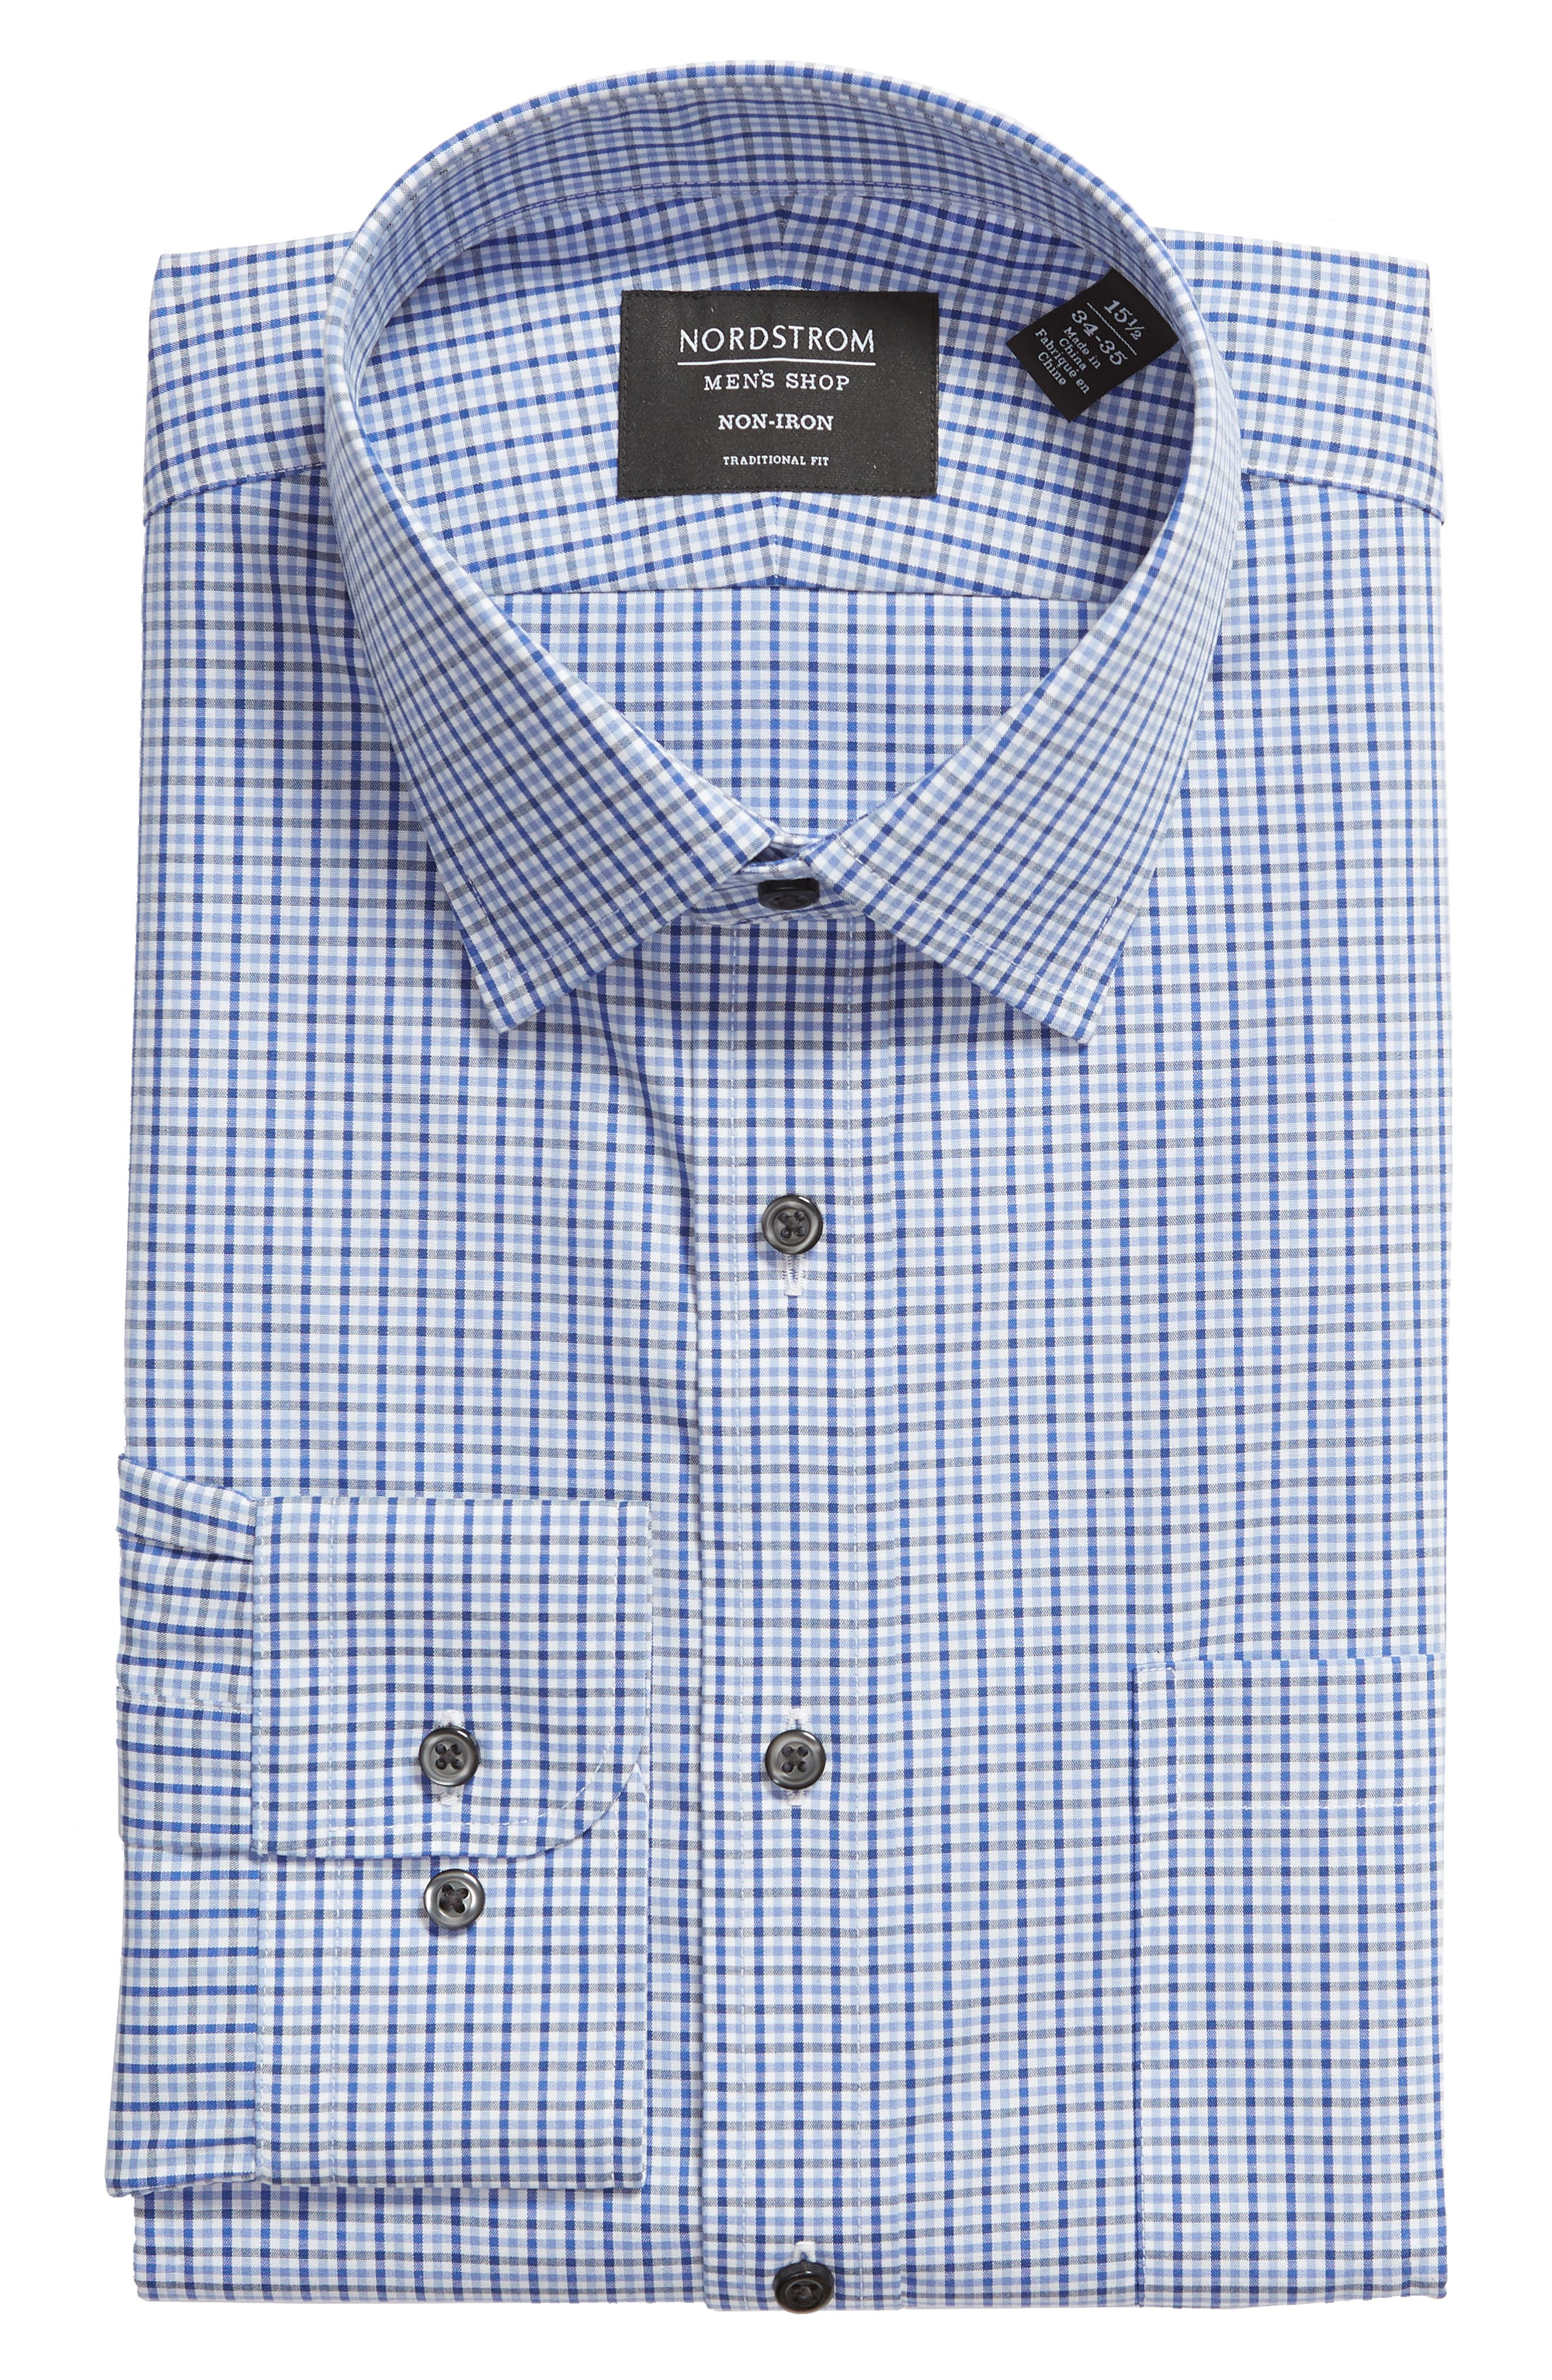 NORDSTROM MEN'S SHOP, Traditional Fit Non-Iron Check Dress Shirt, Alternate thumbnail 5, color, BLUE MARINE